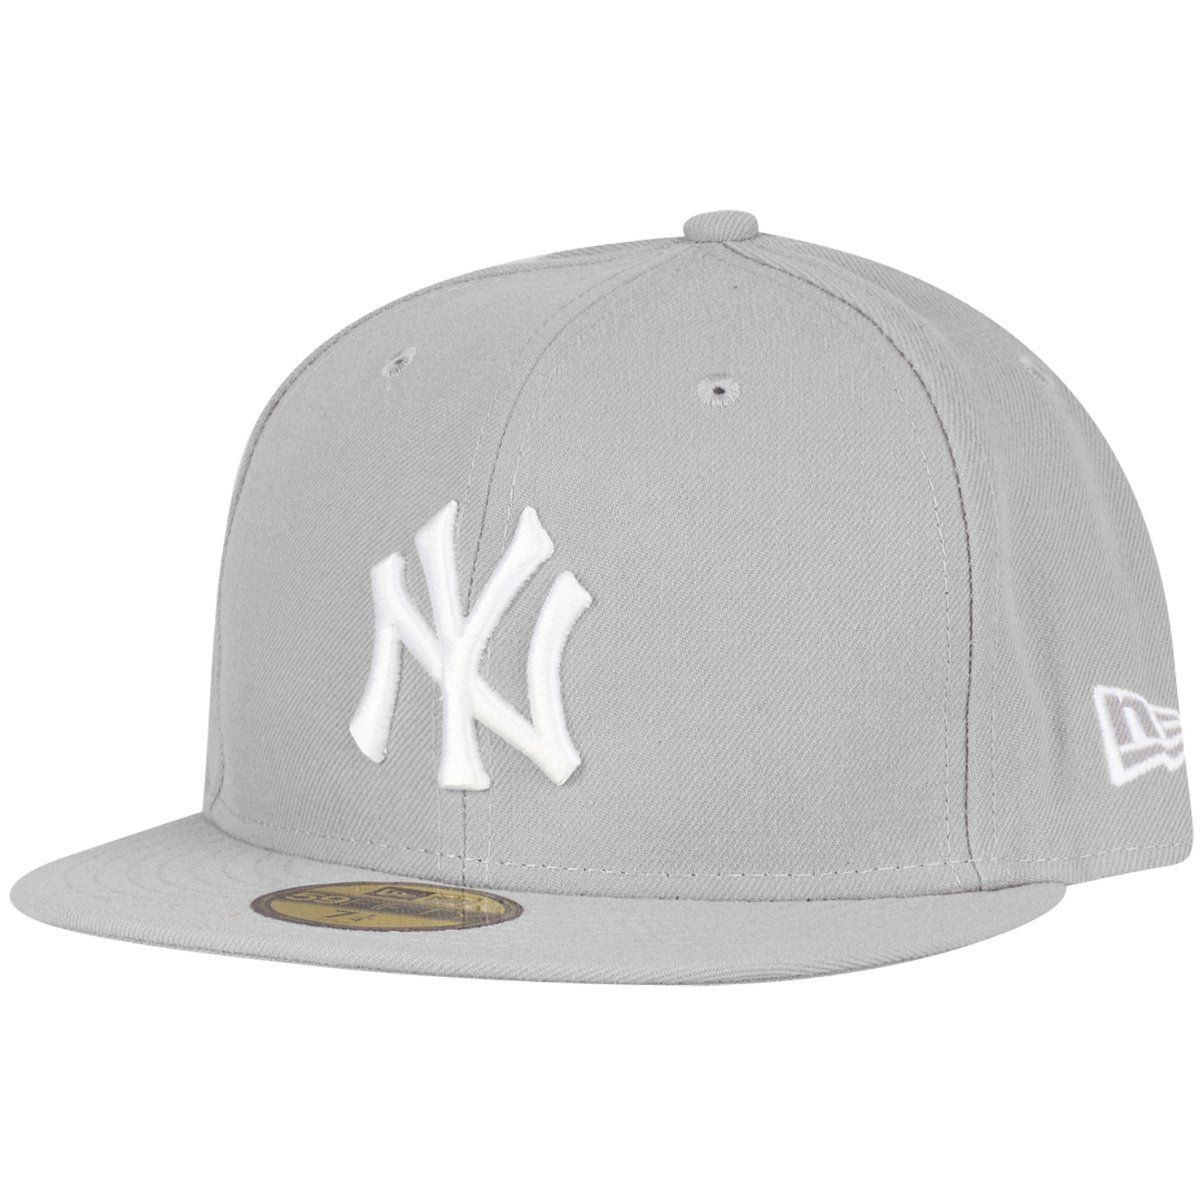 amfoo - New Era 59Fifty Cap - BASIC New York Yankees grau / weiß